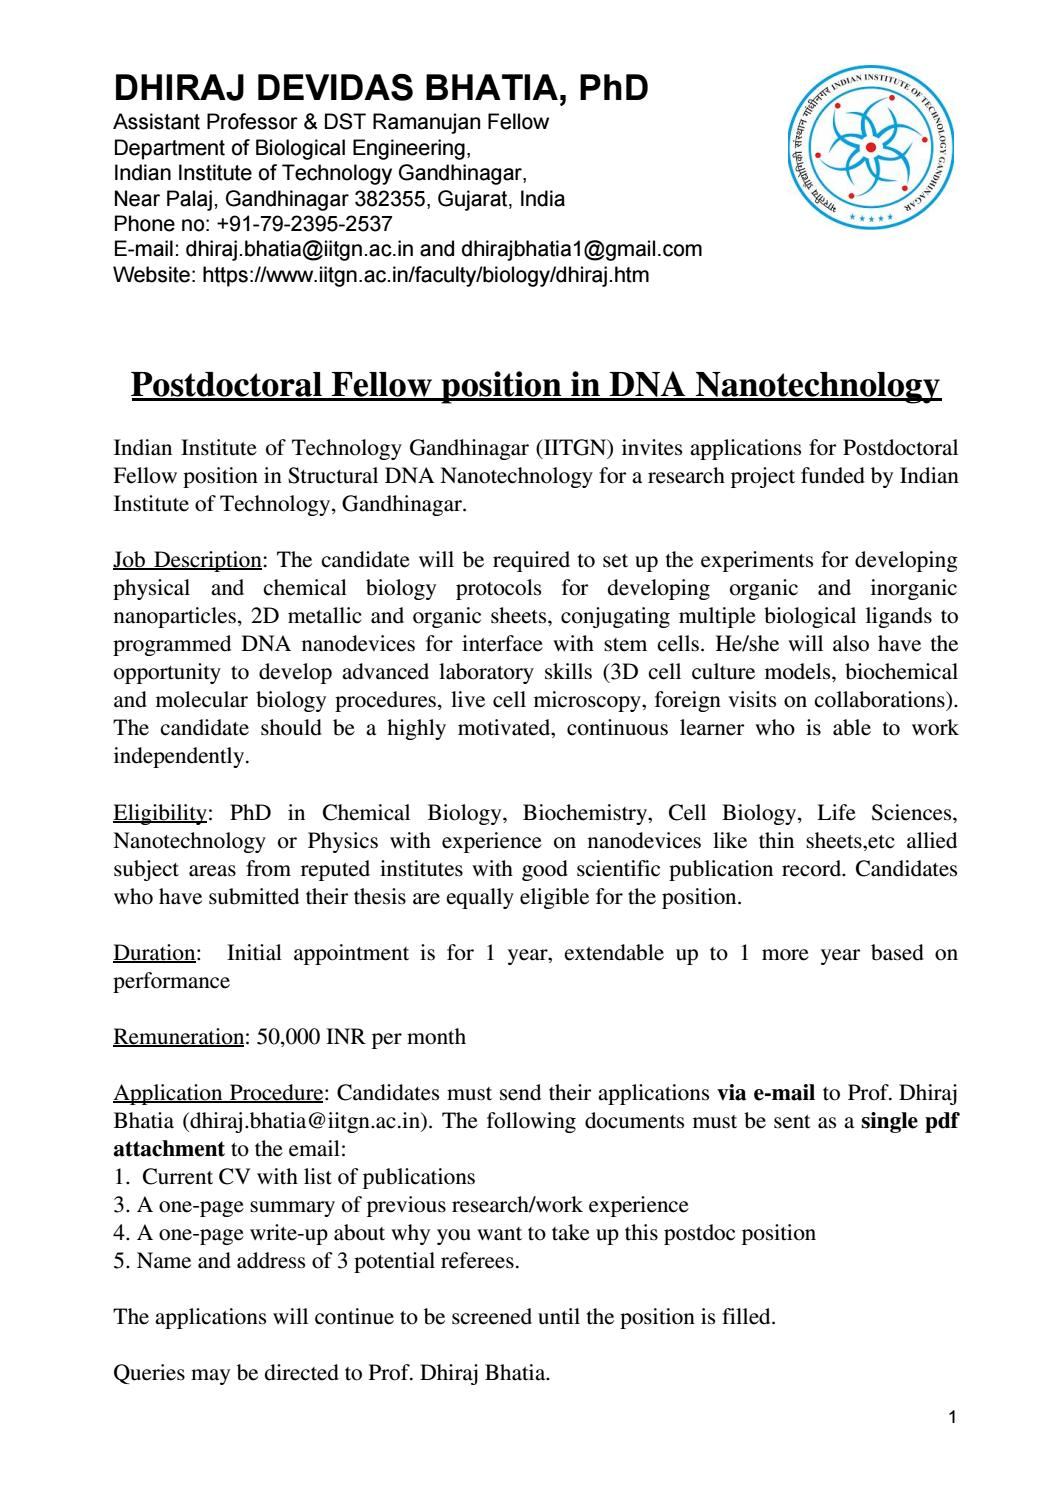 PhD Cell Biology & Life Sciences Postdoctoral Fellow Post @ IIT